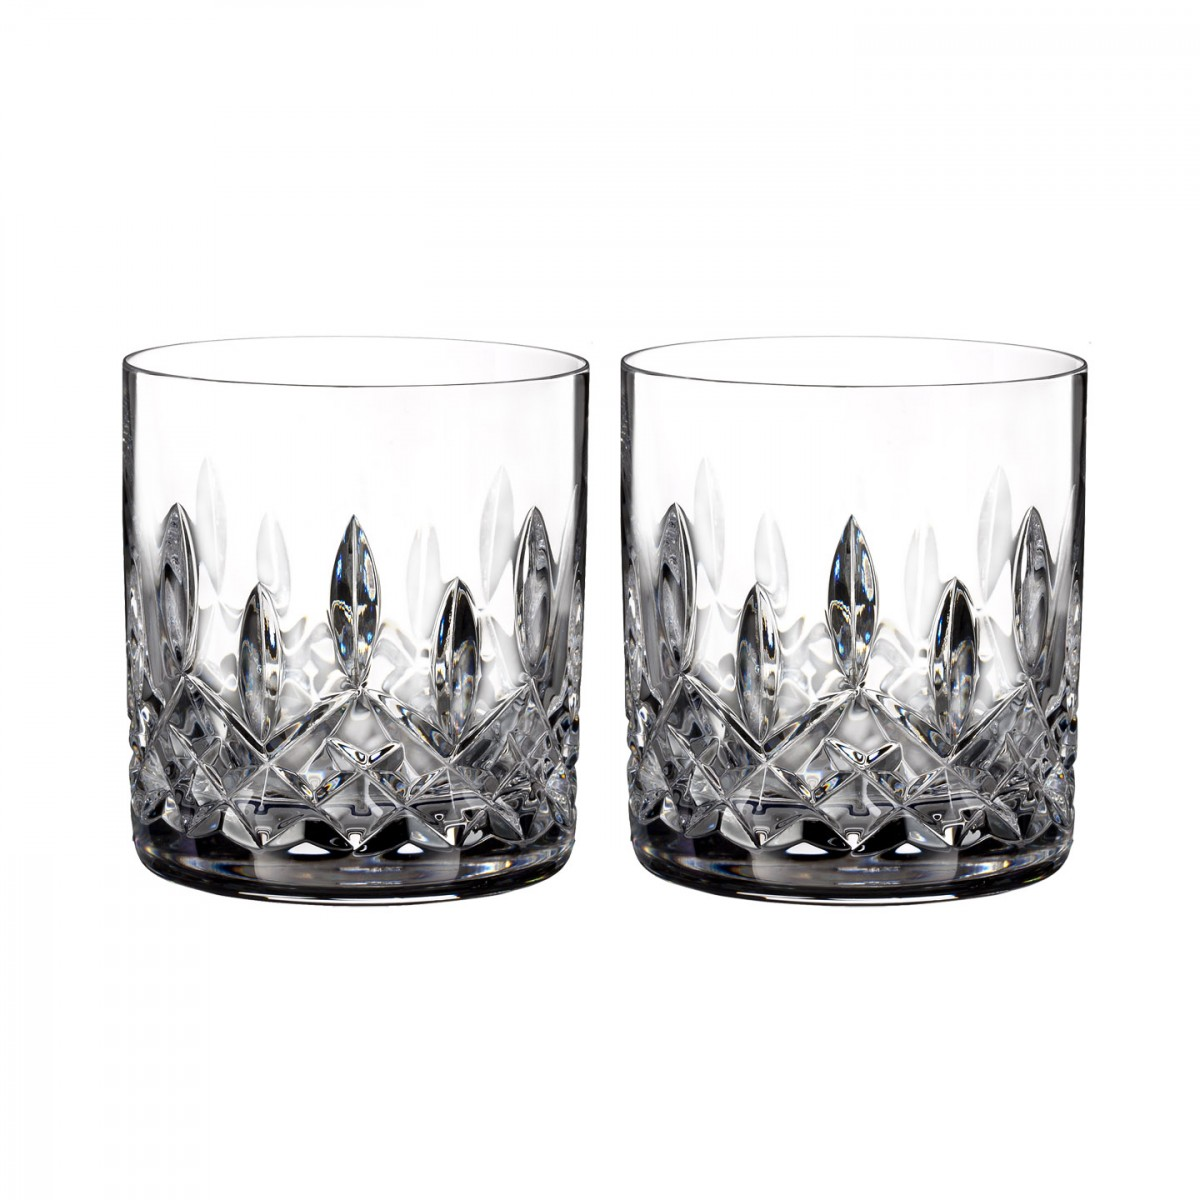 Waterford Crystal, Lismore Straight Sided Whiskey Tumblers, Pair